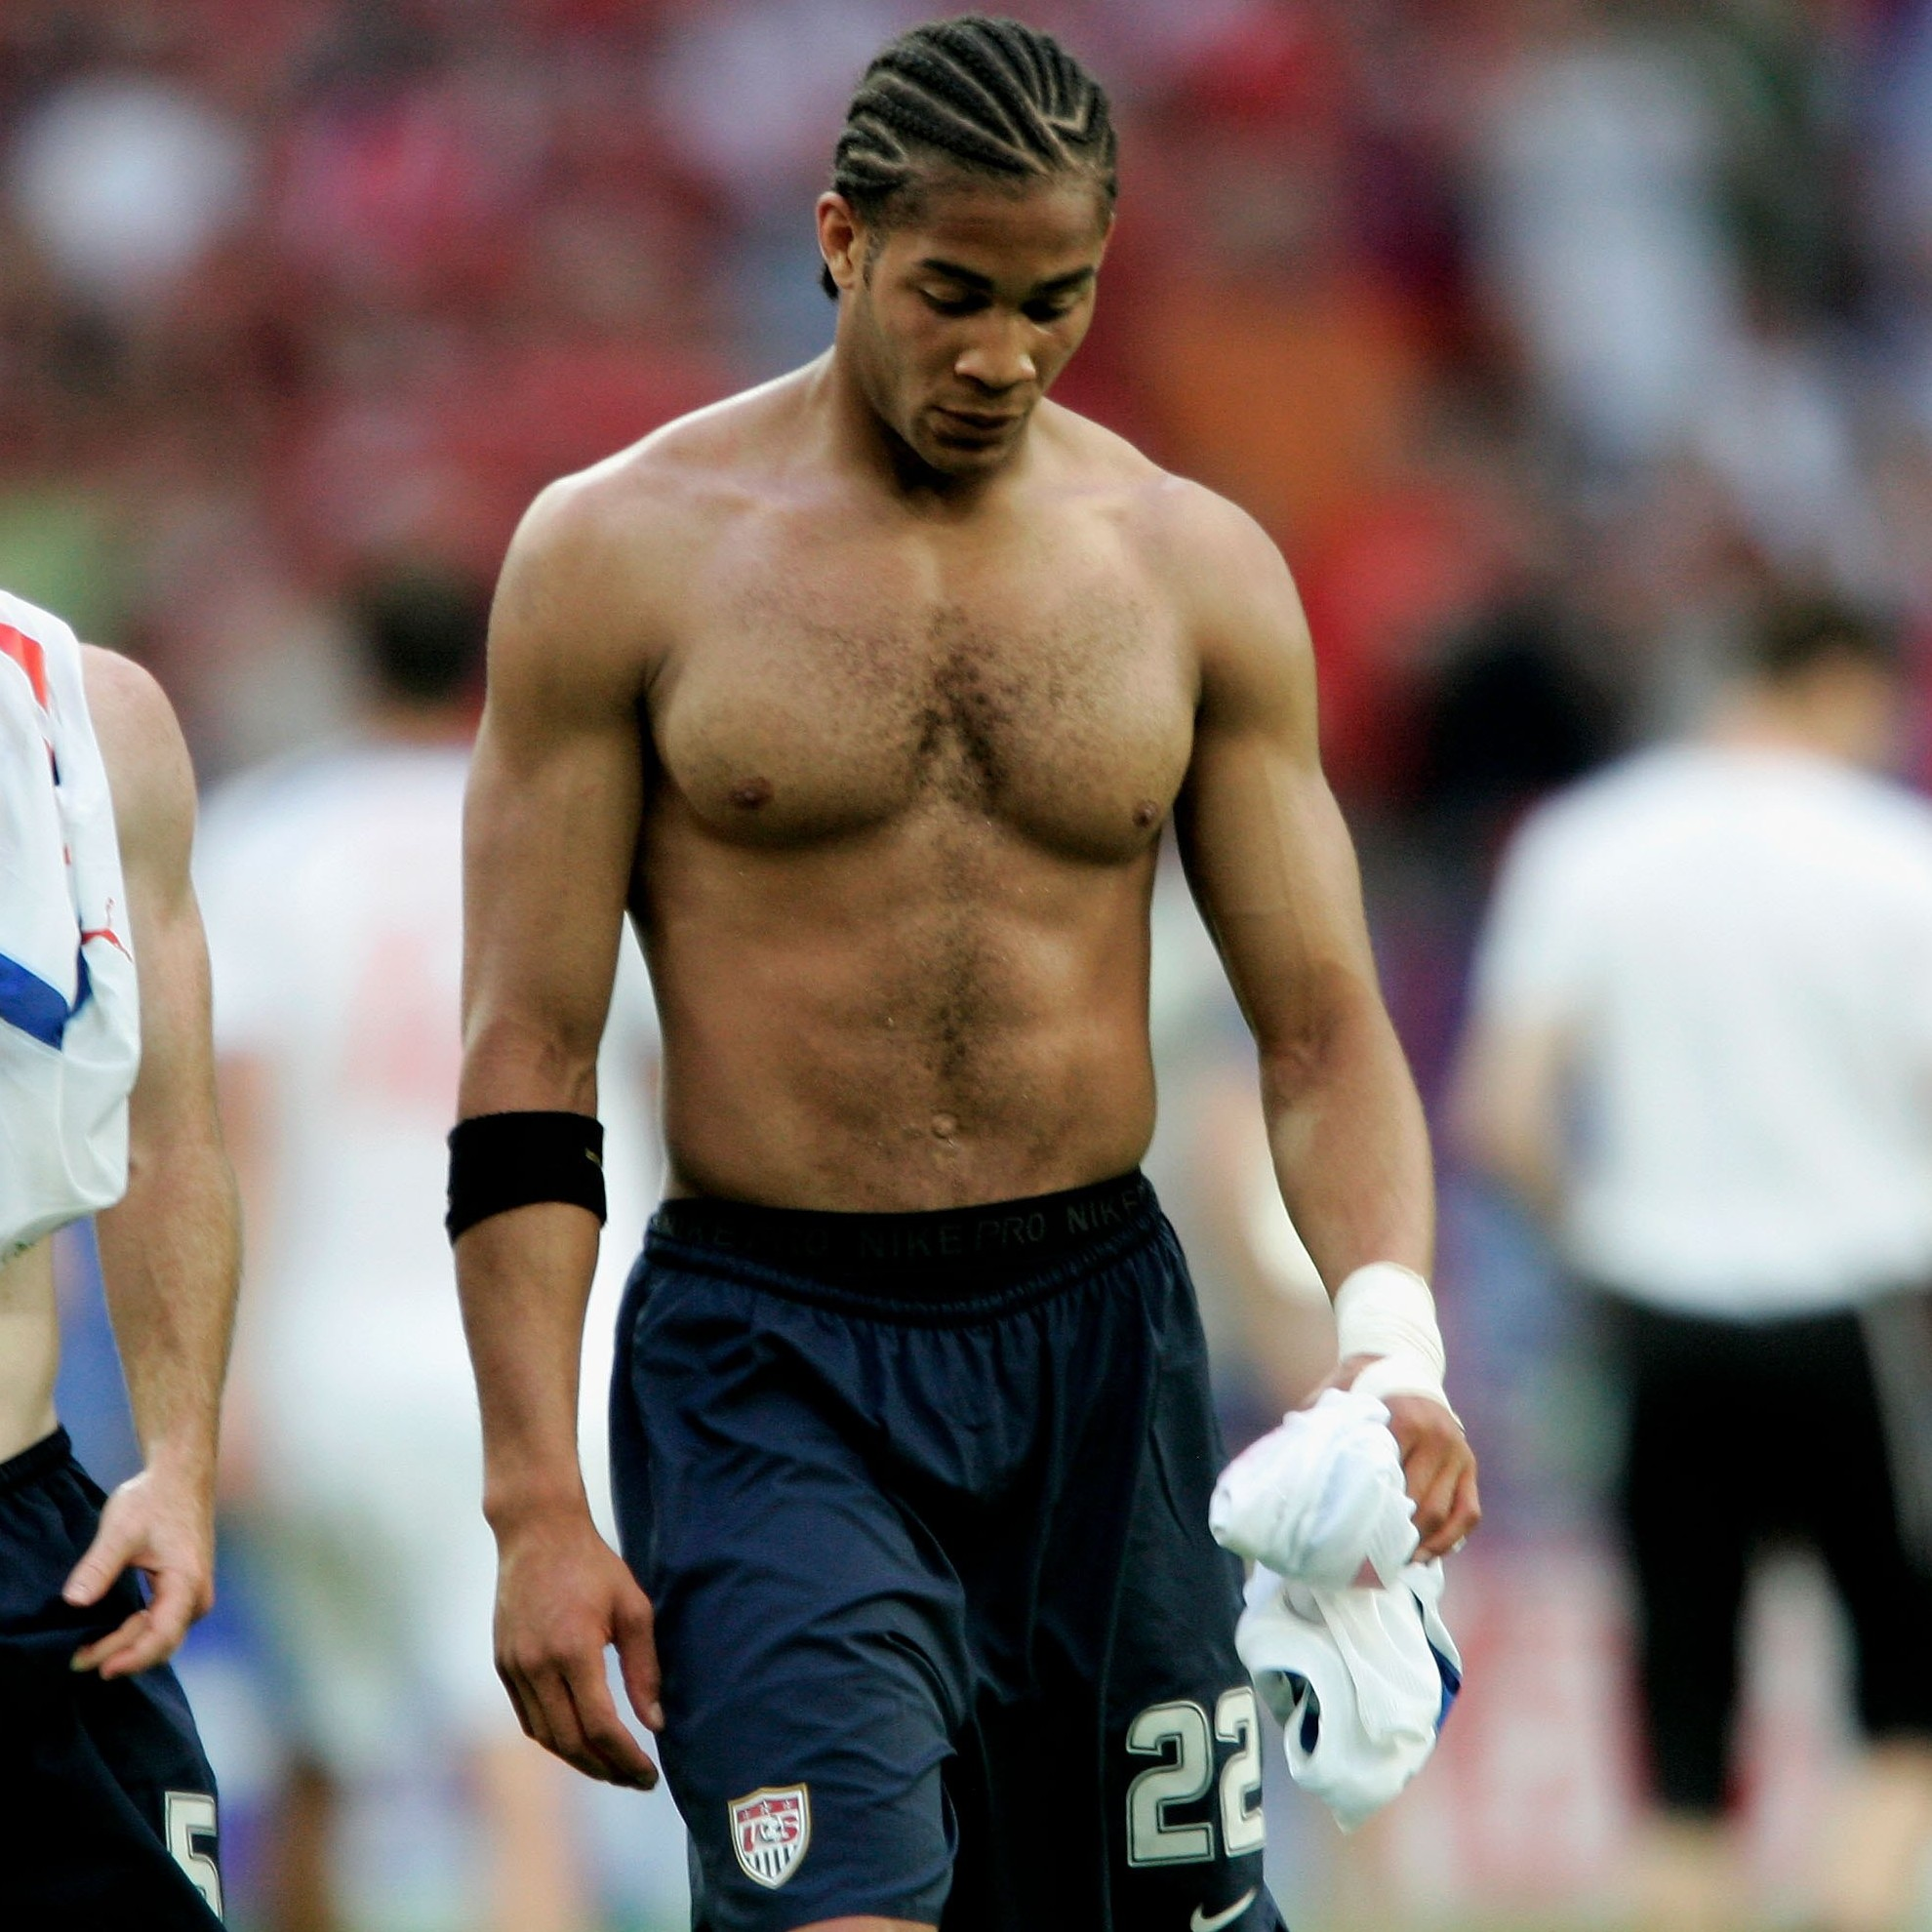 11-oguchi-onyewu-fittest-bodies-in-sports